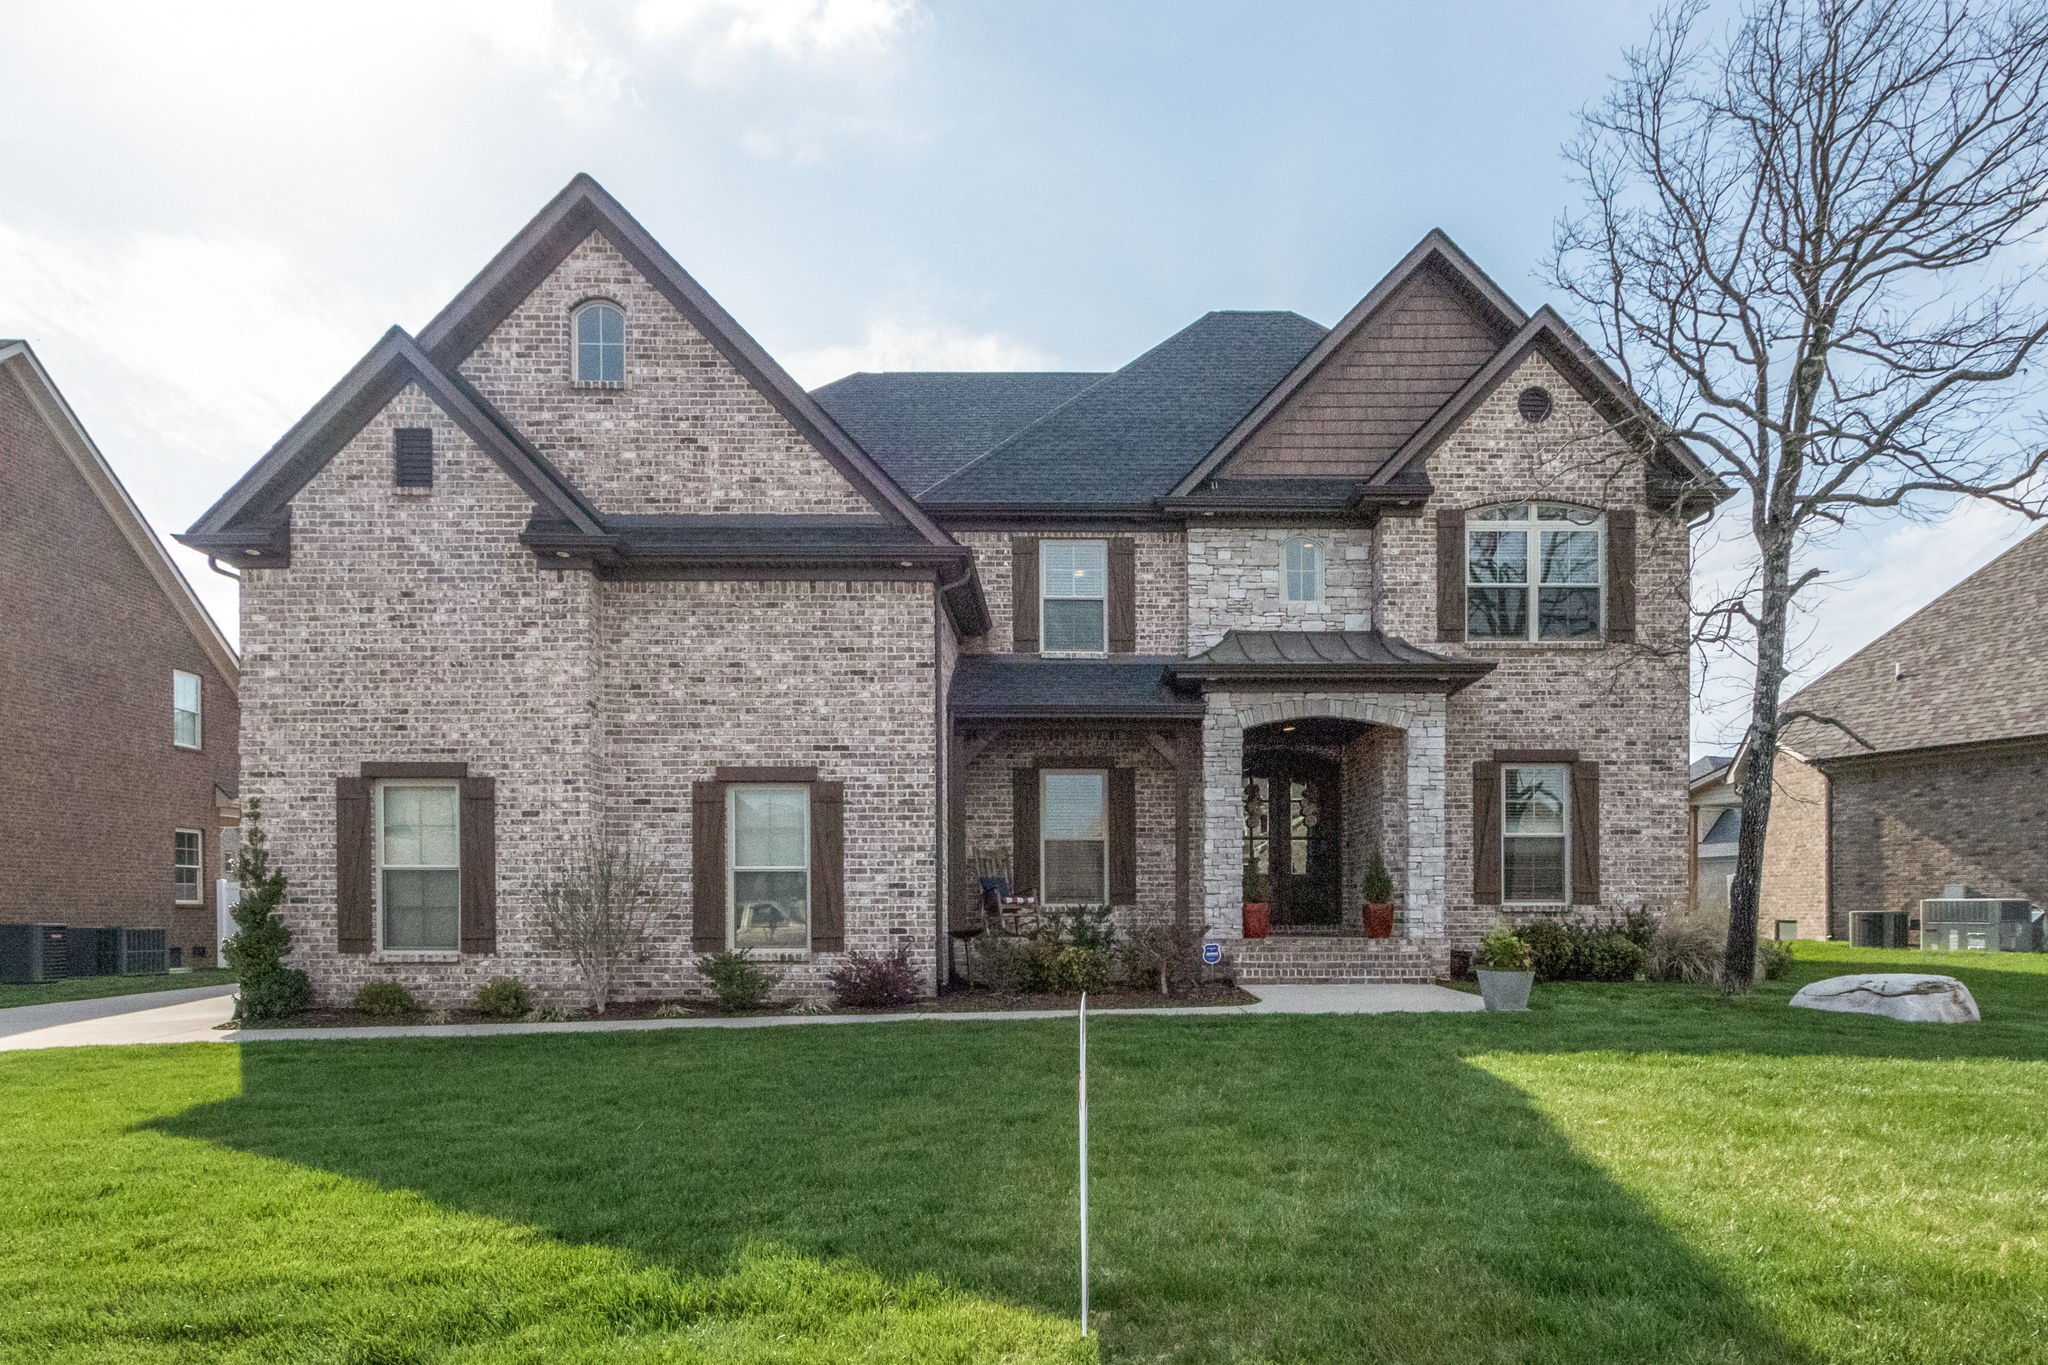 This prestigious brick & stone beauty is a must-see! 2 Bedrooms on main level, 2 up! 3 FULL Baths! 2 Bonus Rooms!! OPEN FLOOR PLAN! All HWs & Tile Downstairs, no carpet down! Spacious Laundry! Custom built-ins in all closets! Stunning Kitchen w/Pantry! Walk-in Storage! Covered/Screened Rear Porch. Full Yard Irrigation! Convenient location!